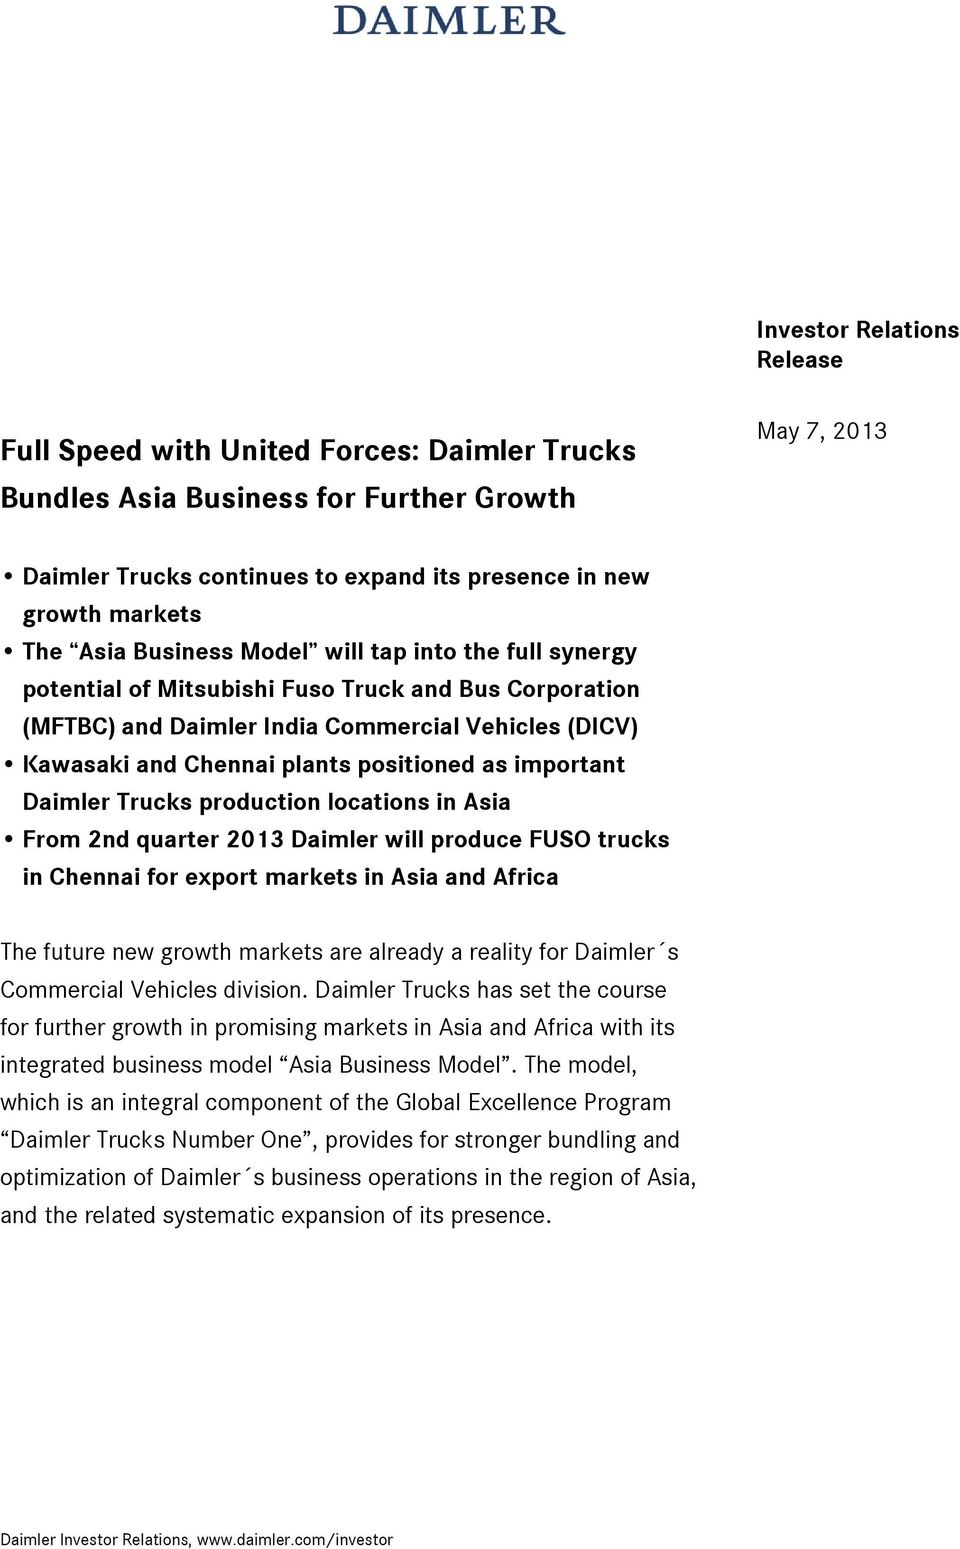 as important Daimler Trucks production locations in Asia From 2nd quarter 2013 Daimler will produce FUSO trucks in Chennai for export markets in Asia and Africa The future new growth markets are